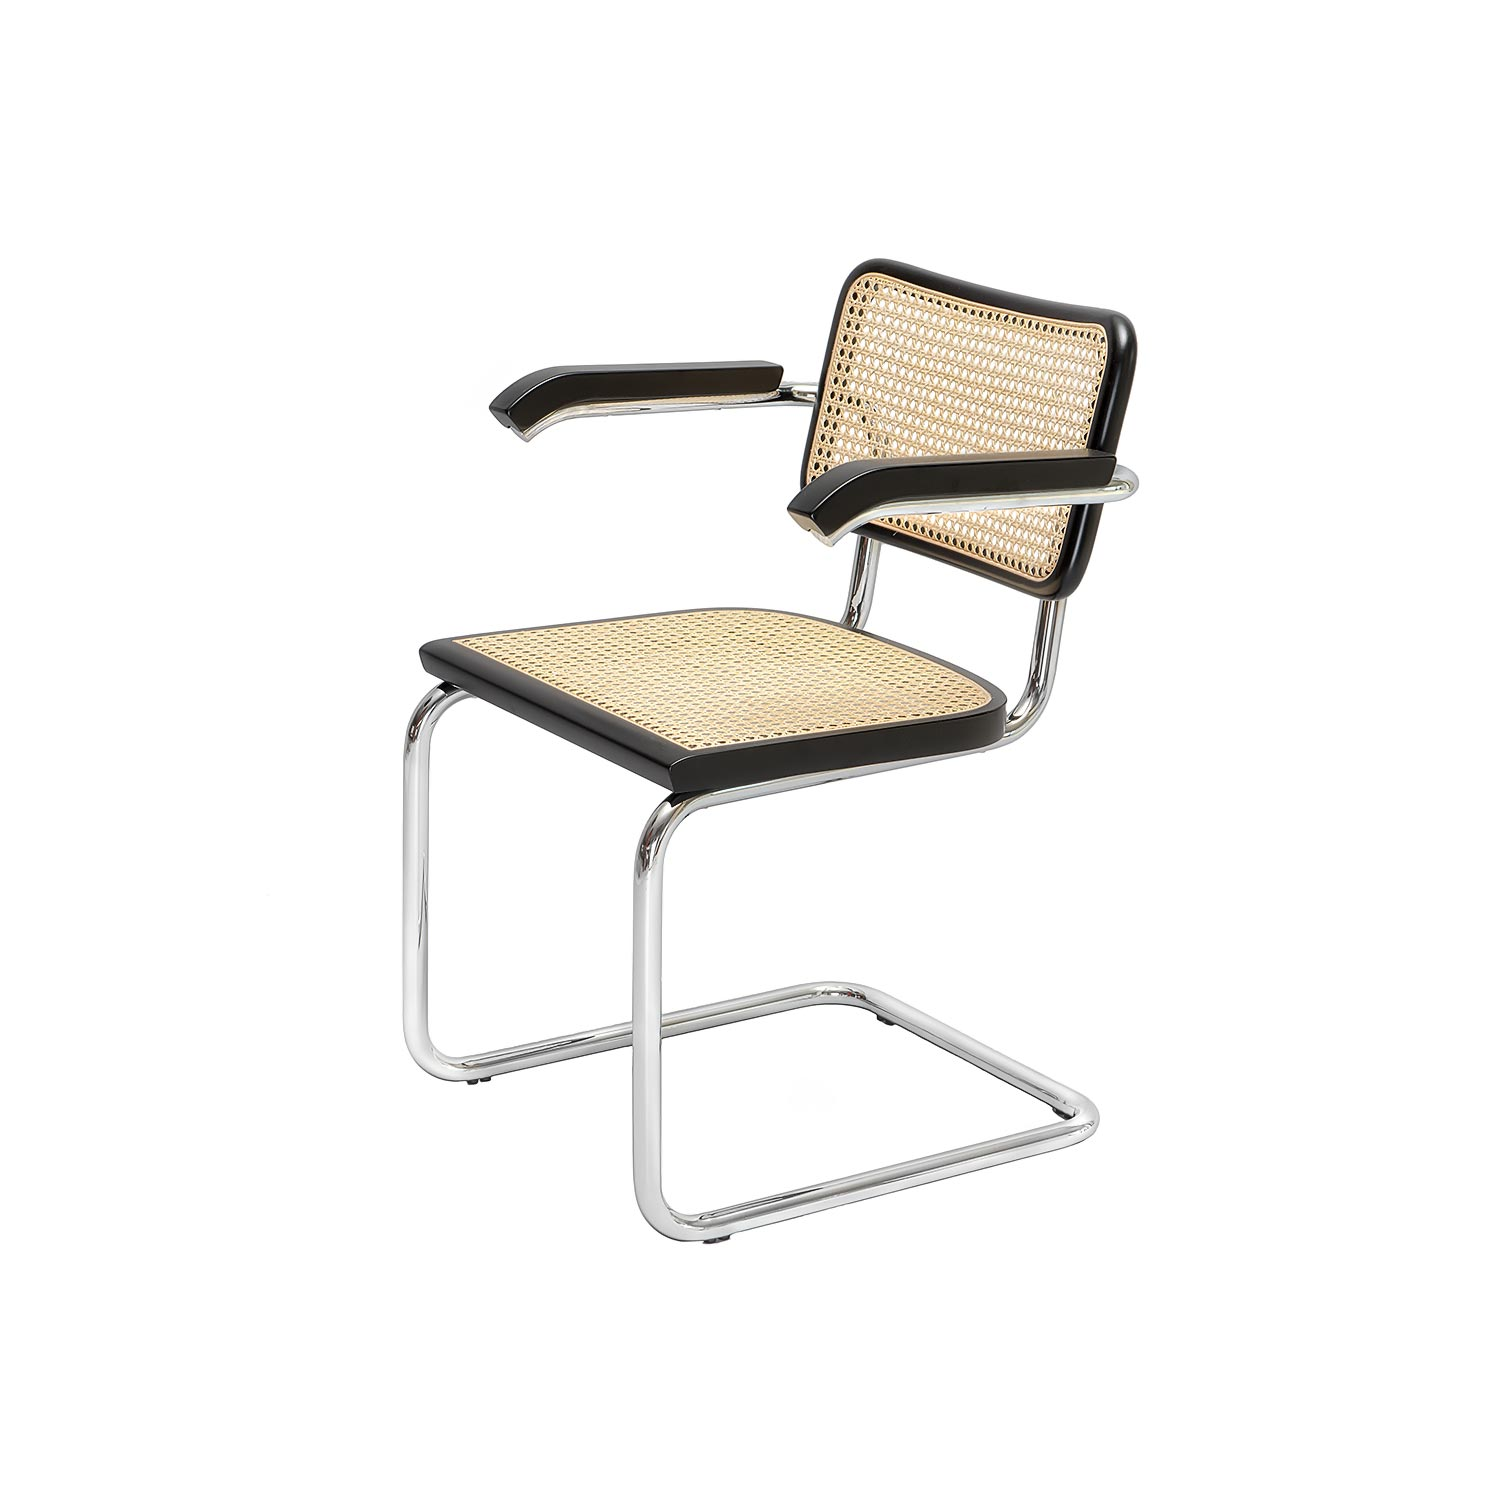 cesca chair b 64 designed by marcel breuer steelform design classics. Black Bedroom Furniture Sets. Home Design Ideas